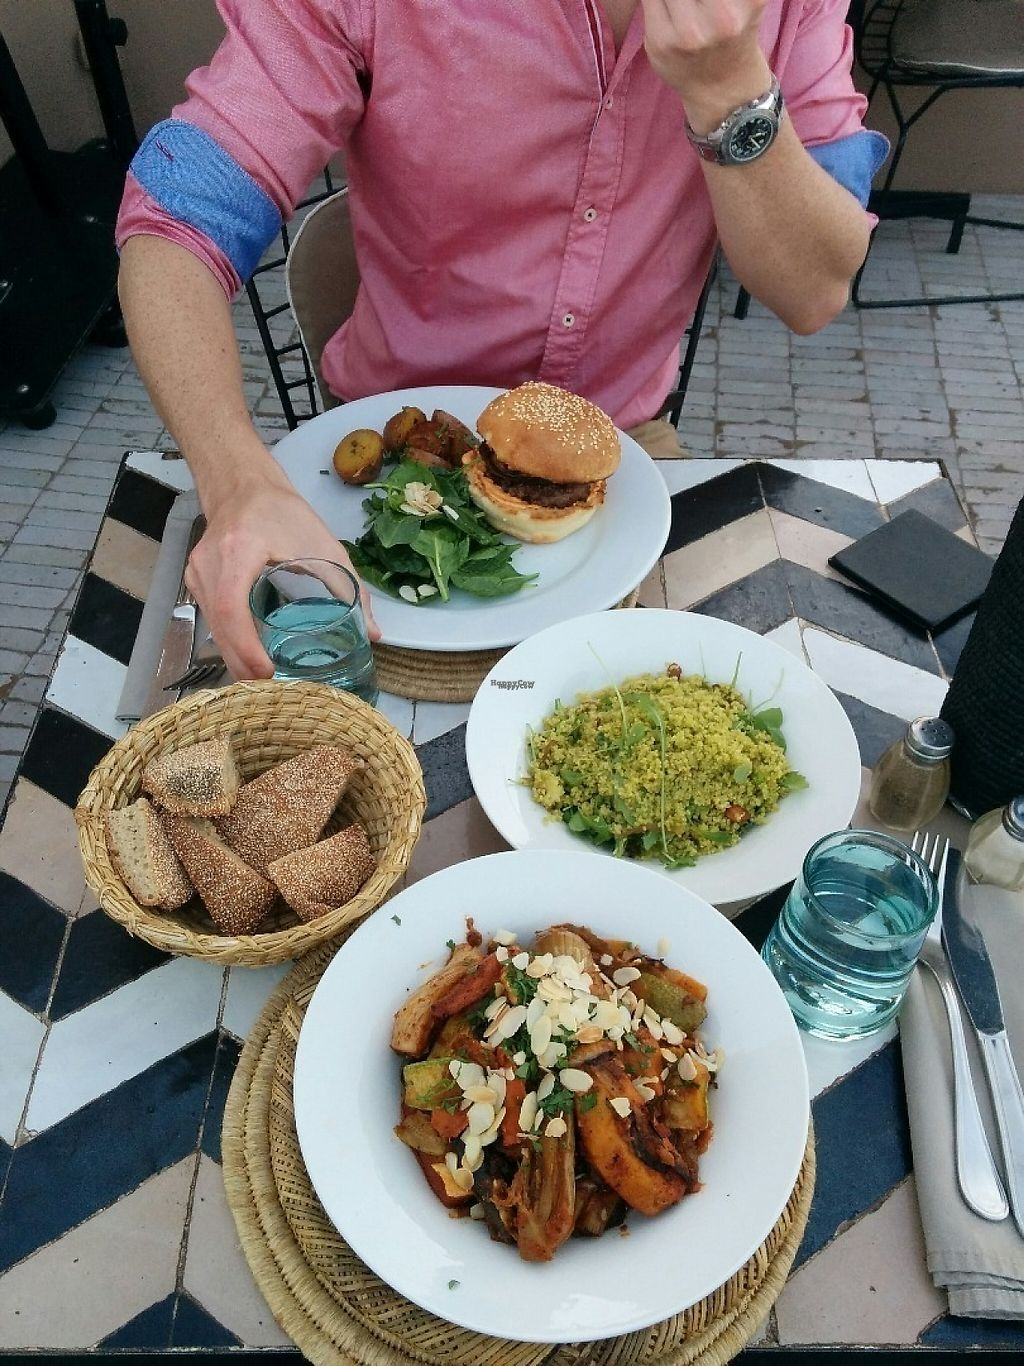 """Photo of NOMAD  by <a href=""""/members/profile/EarthlingAndrea"""">EarthlingAndrea</a> <br/>I had vegan tajine and vegan couscous to share. They always serve you bread with your meal <br/> December 10, 2016  - <a href='/contact/abuse/image/83652/198880'>Report</a>"""